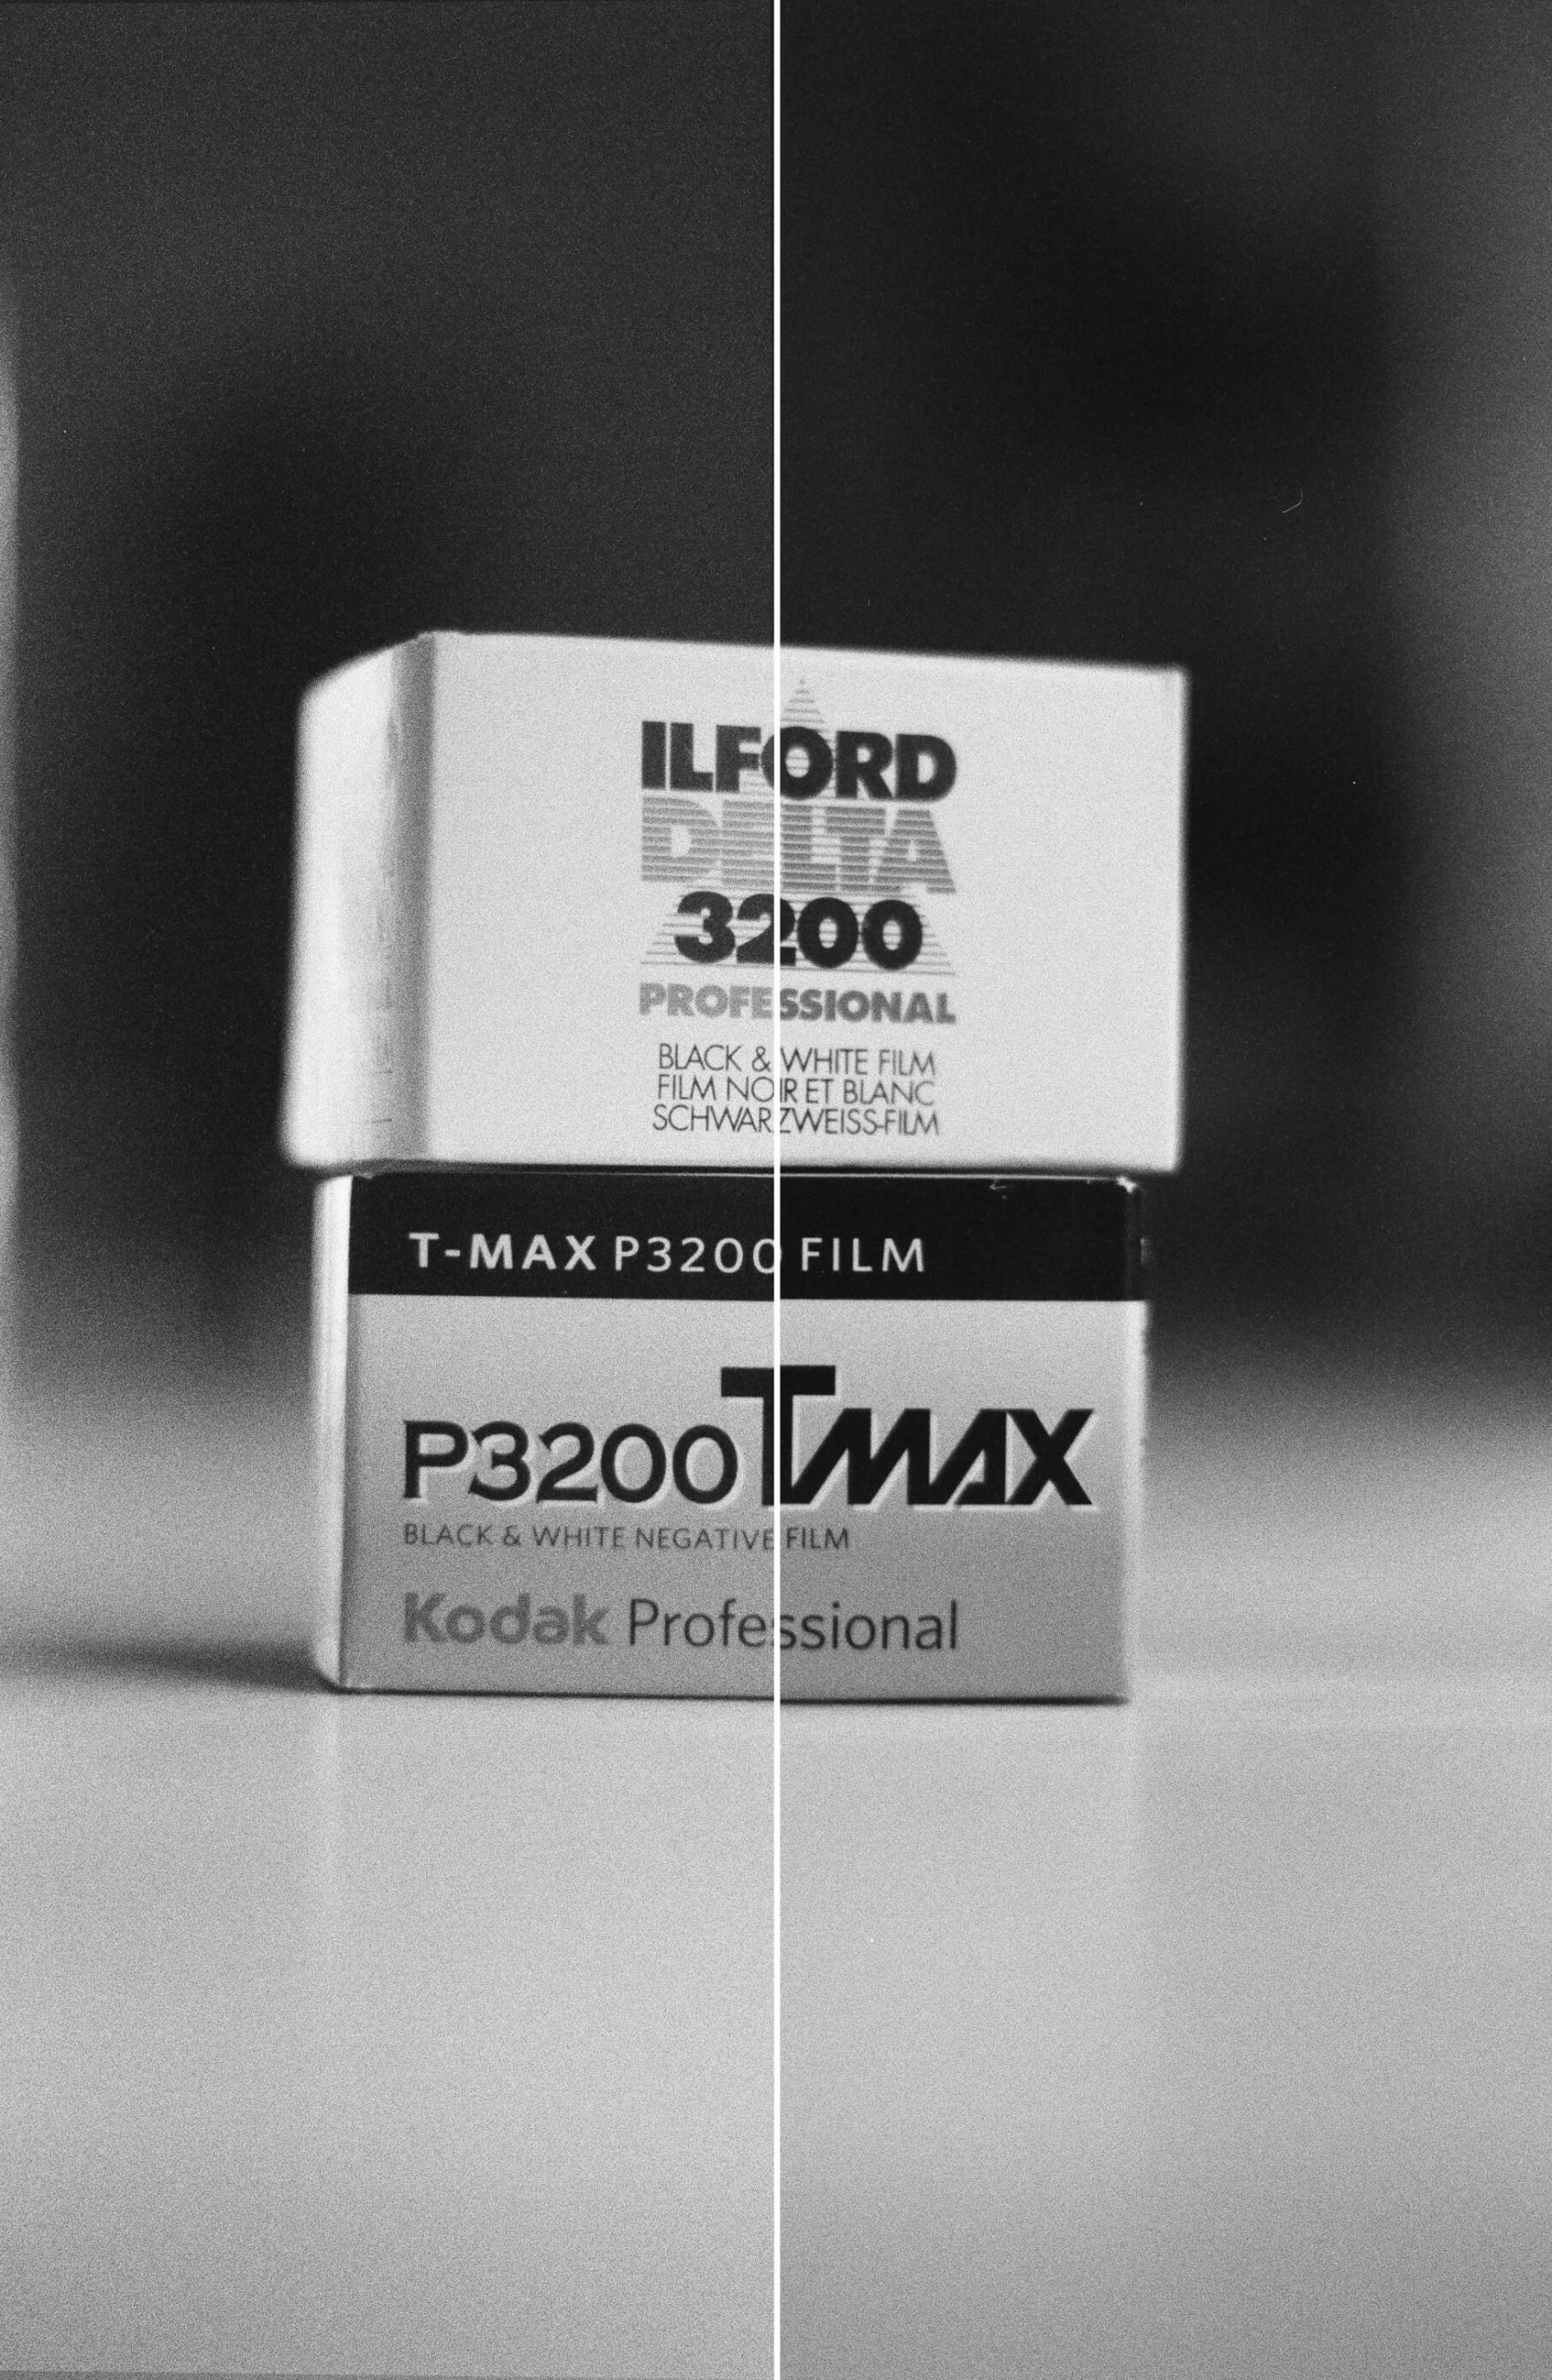 Delta 3200 vs T-MAX P3200 film boxes